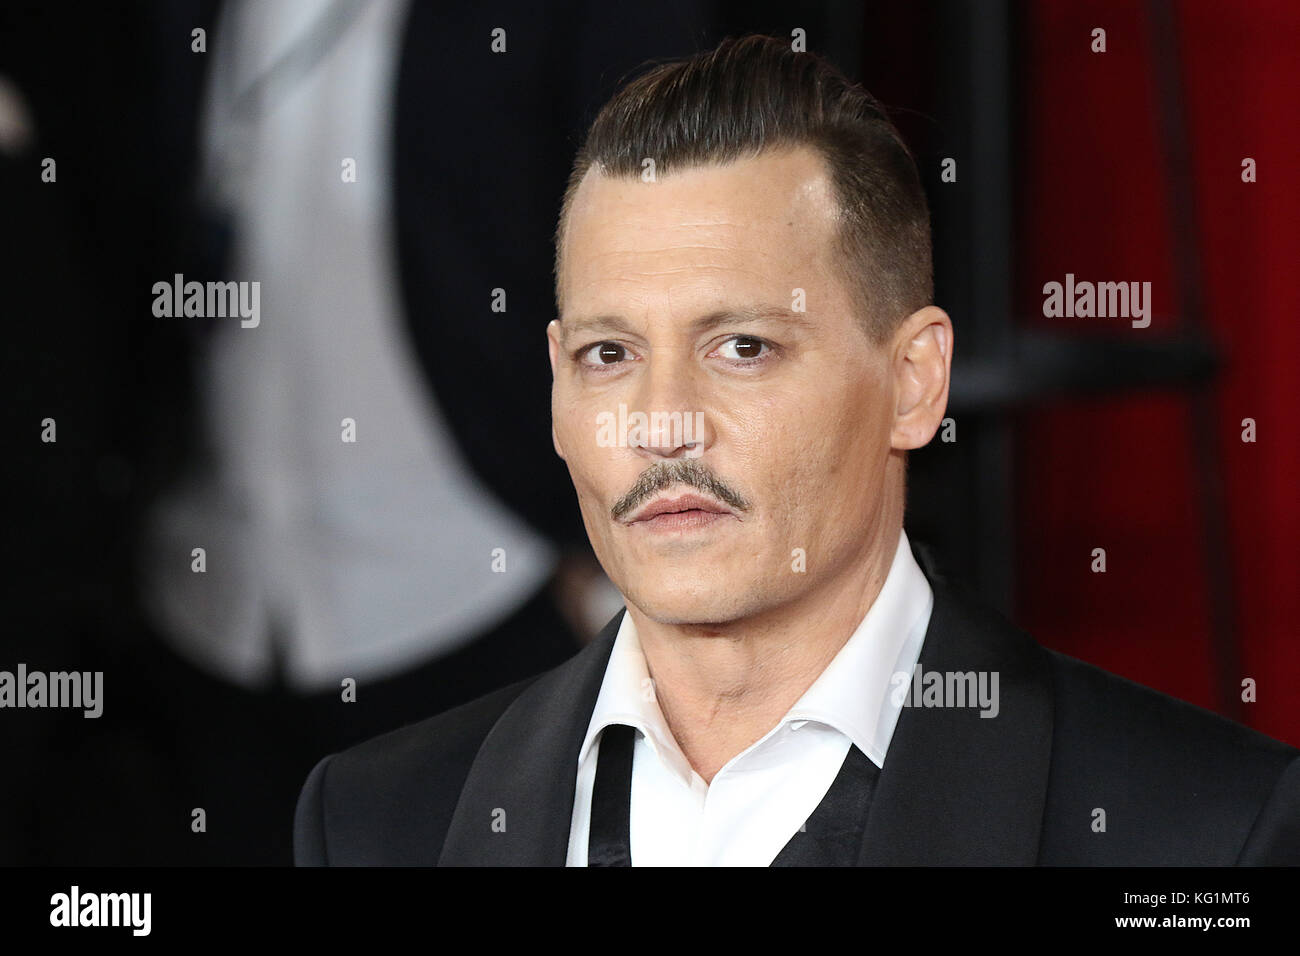 London, UK. 02nd Nov, 2017. Johnny Depp, Murder on the Orient Express - World Premiere, Royal Albert Hall, London - Stock Image